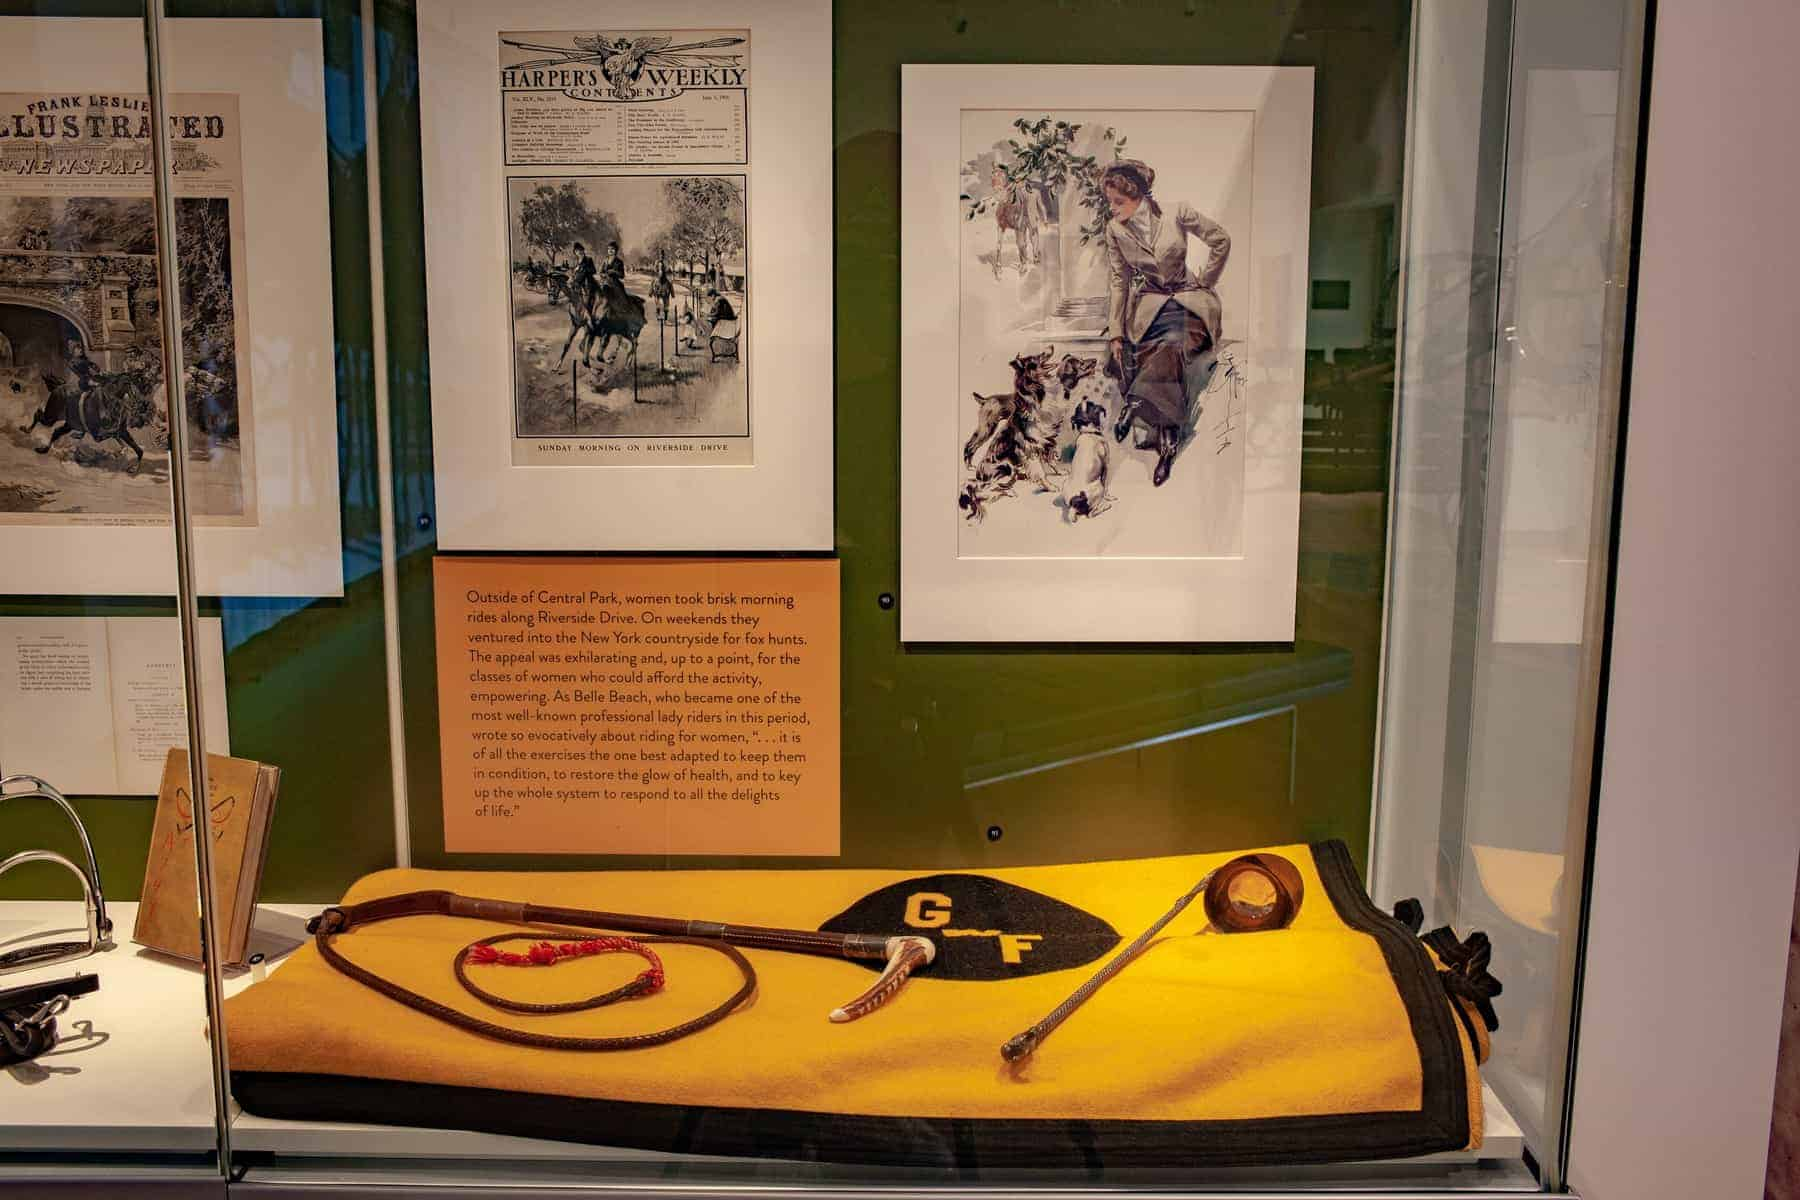 A black and gold horse blanket sits at the base of the case, and over the top are laid a whip and decorative ladle. An illustration of a woman in riding attire posing with dogs is at right, and at left an illustration of women riding on Riverside Drive.